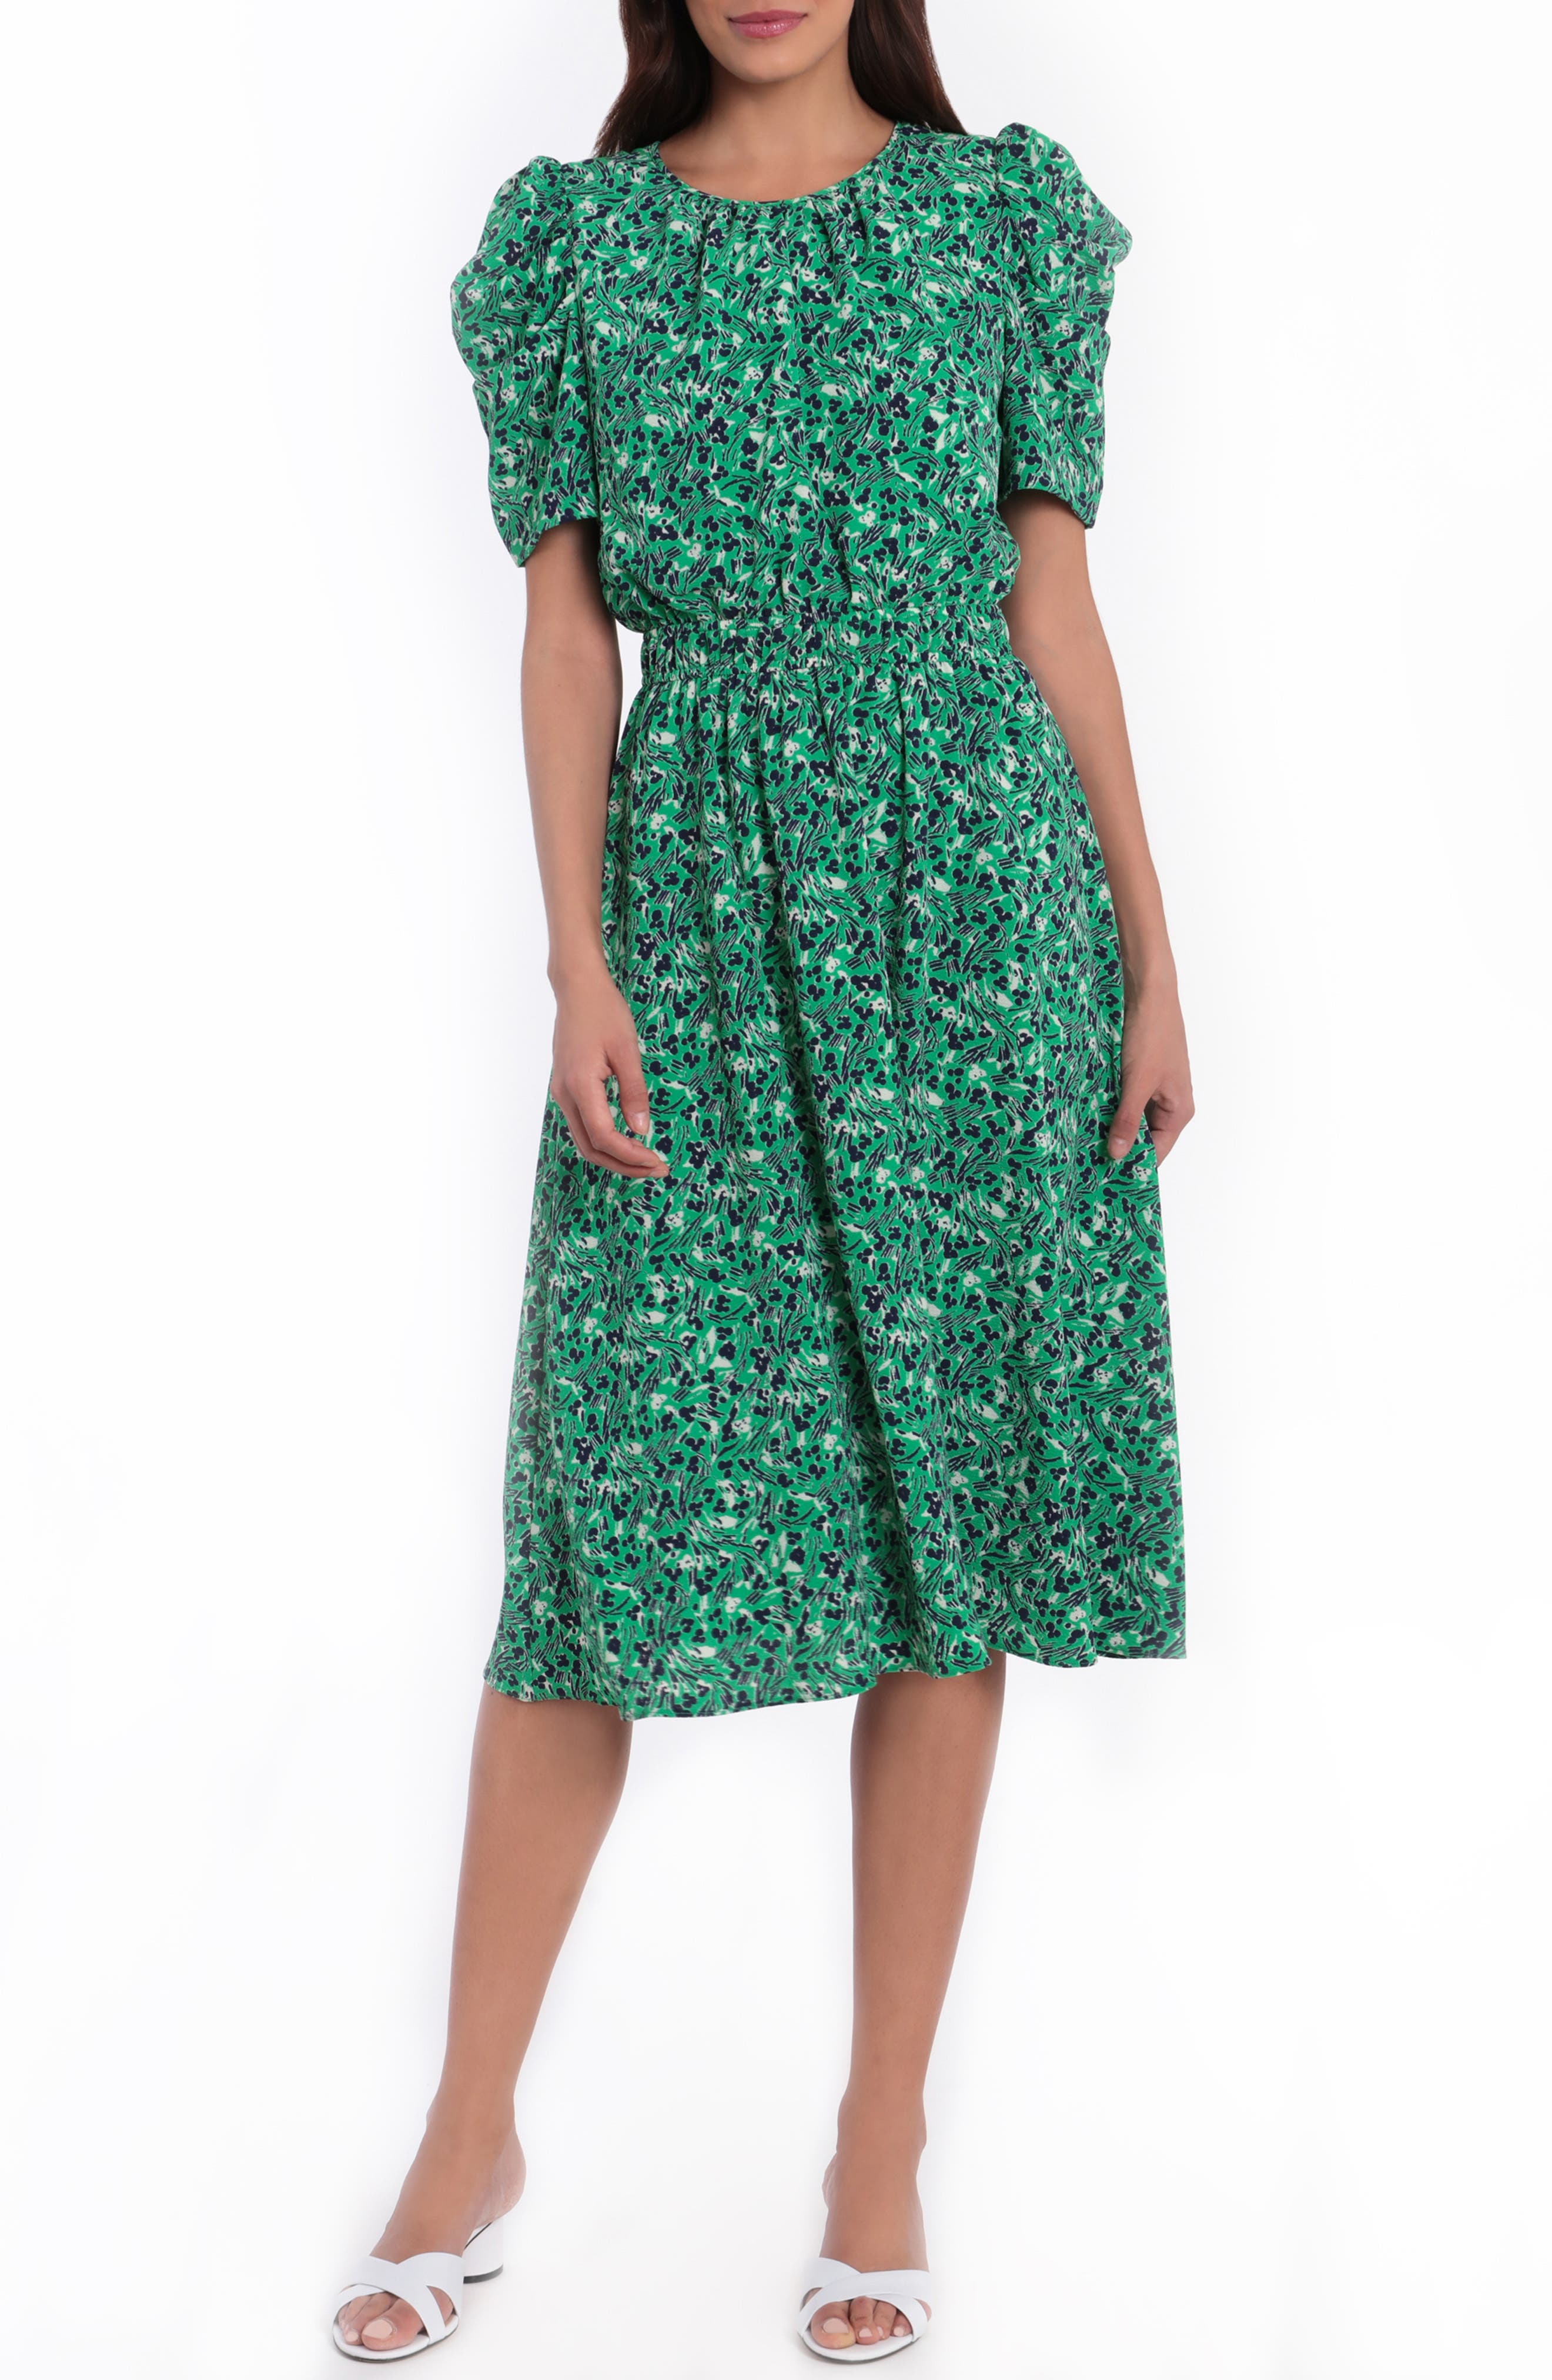 1980s Clothing, Fashion | 80s Style Clothes Womens Maggy London Floral Ruched Sleeve A-Line Bubble Crepe Dress Size 6 - Green $99.00 AT vintagedancer.com